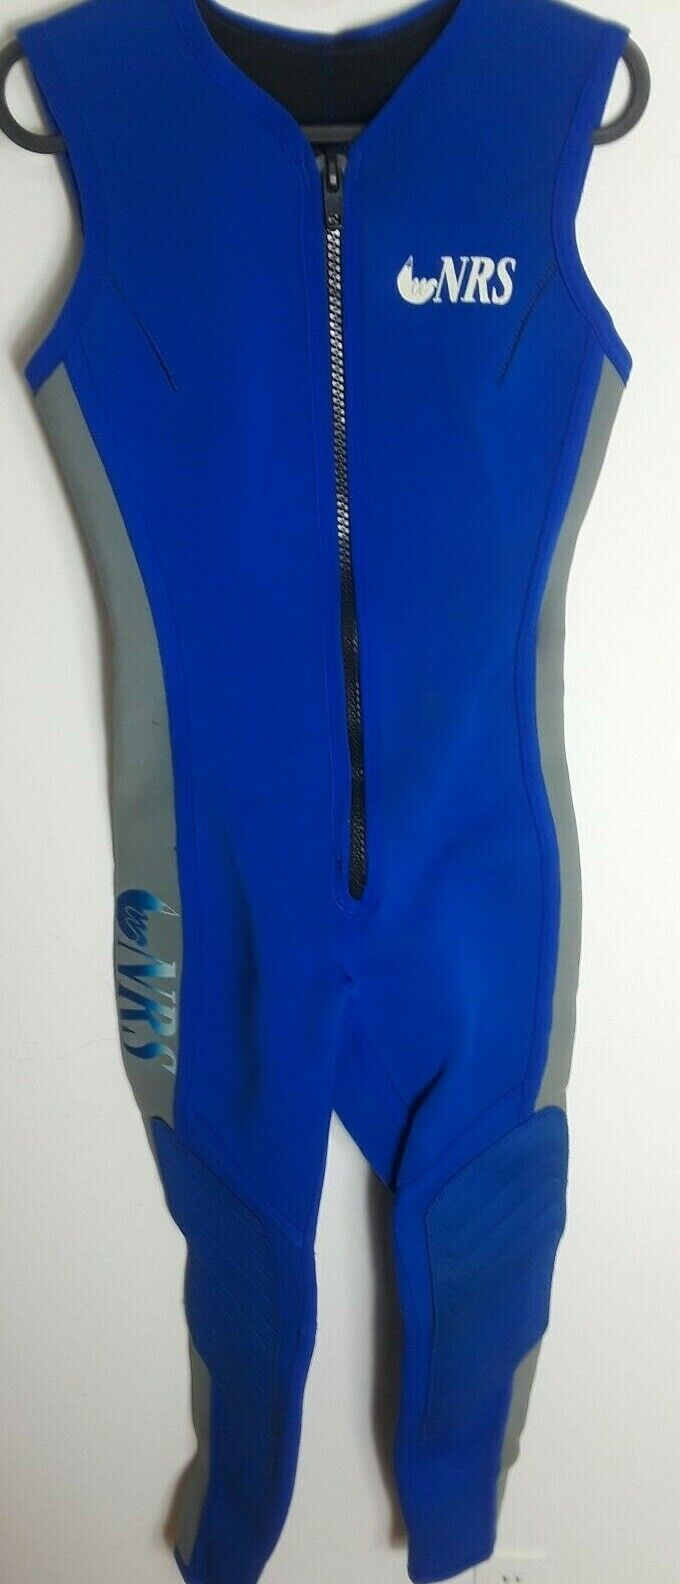 NRS  Farmer Jane Wetsuit bluee Sleeveless Ankle Zip Size Small  world famous sale online